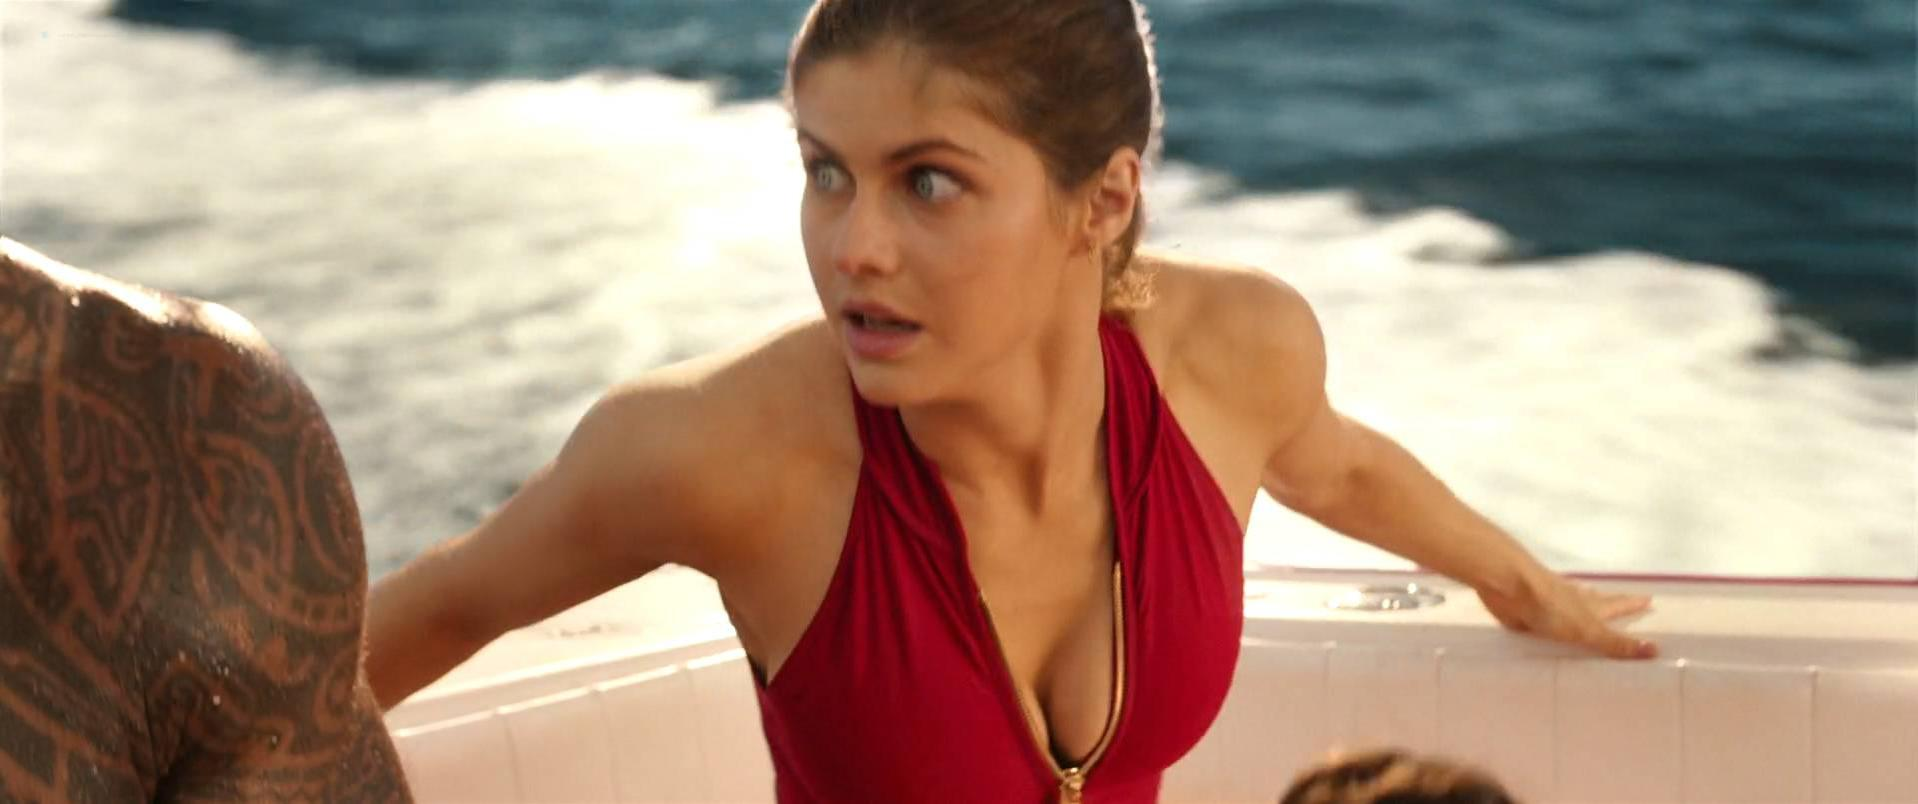 Nude Video Celebs  Alexandra Daddario Sexy, Kelly -3312